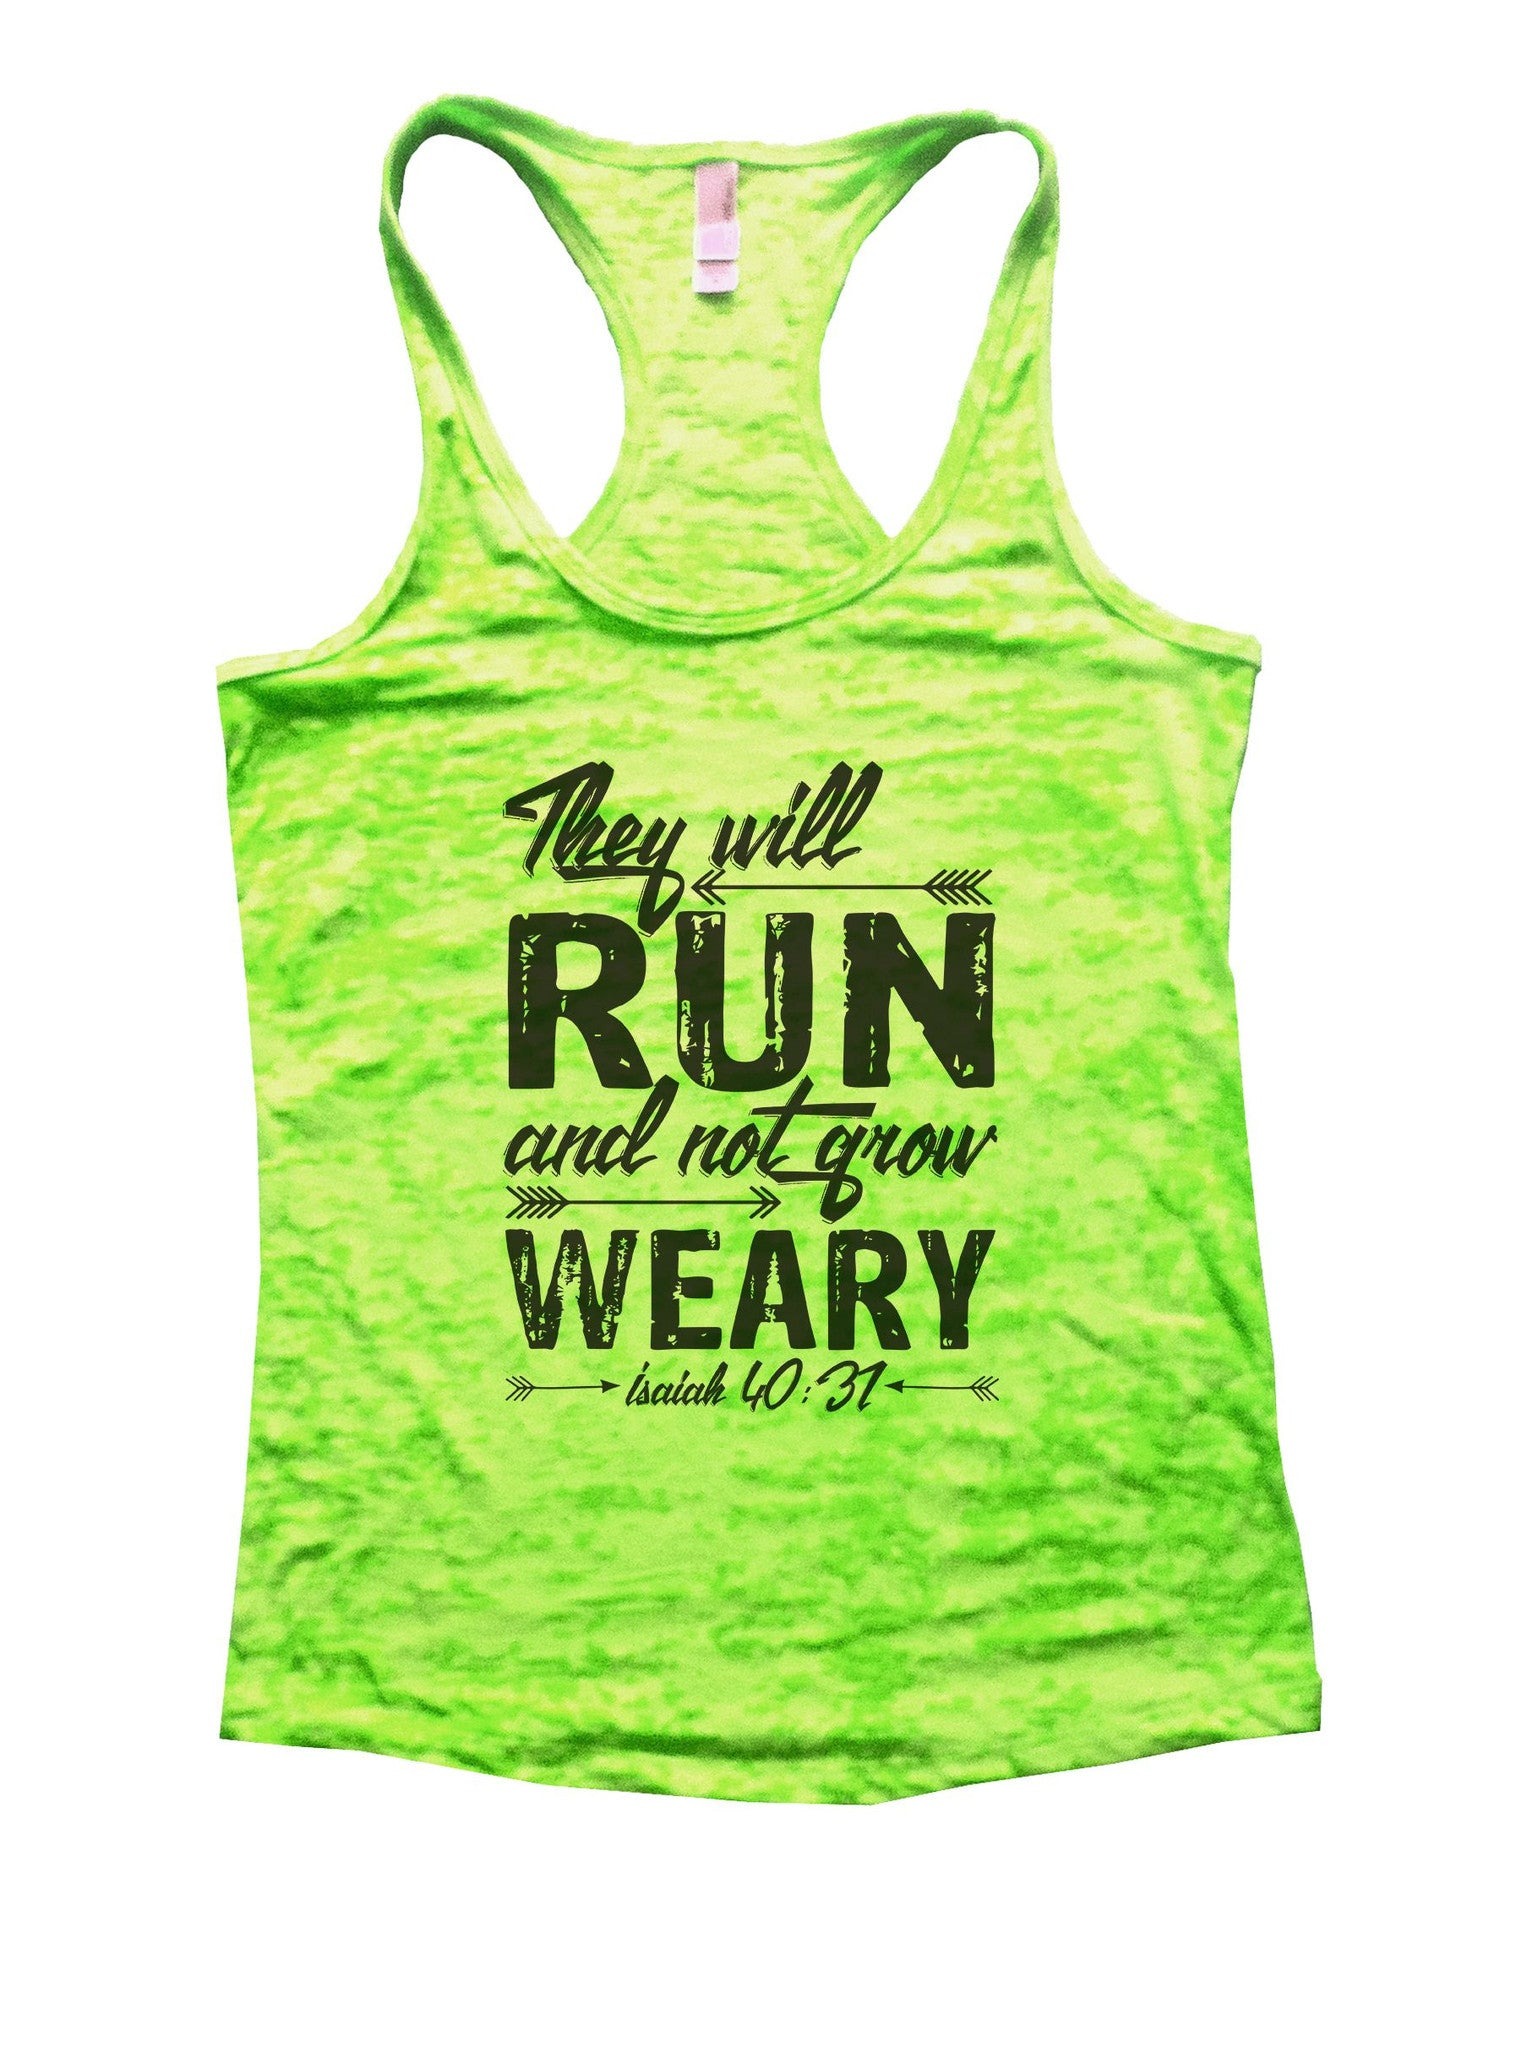 They Will Run And Not Grow Weary Isaiah 40:31 Burnout Tank Top By BurnoutTankTops.com - 1075 - Funny Shirts Tank Tops Burnouts and Triblends  - 1